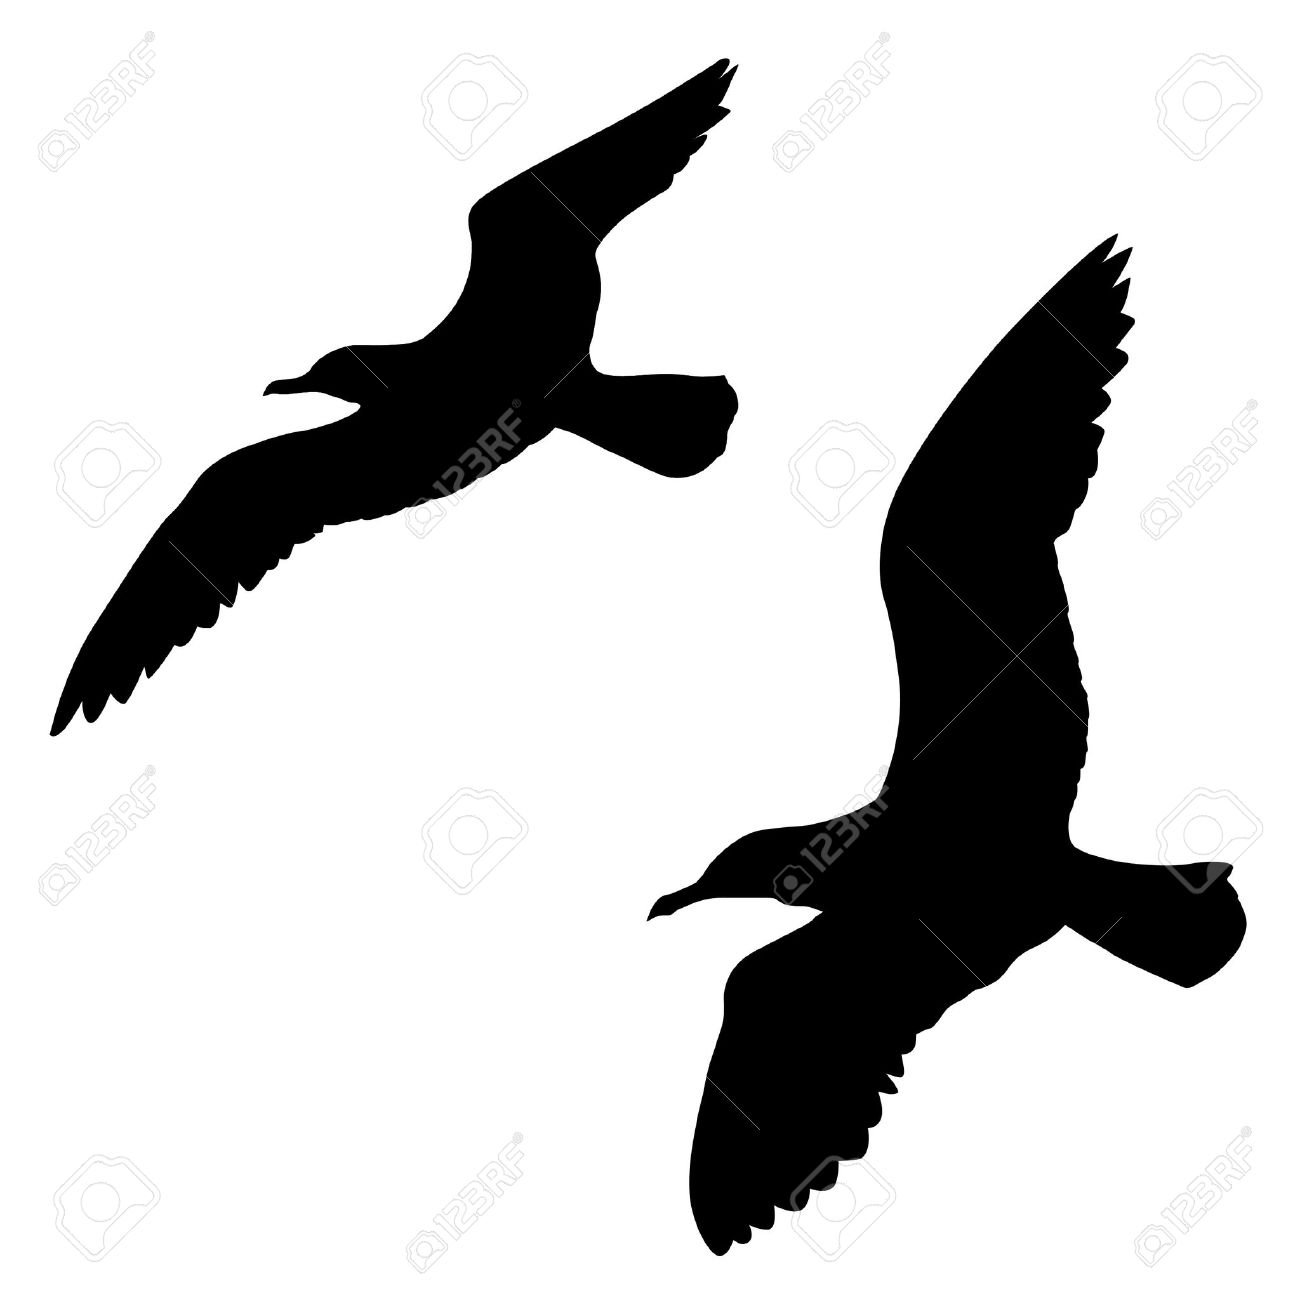 silhouette of the sea gull on white background royalty free cliparts rh 123rf com seagull vector art seagull vector free download